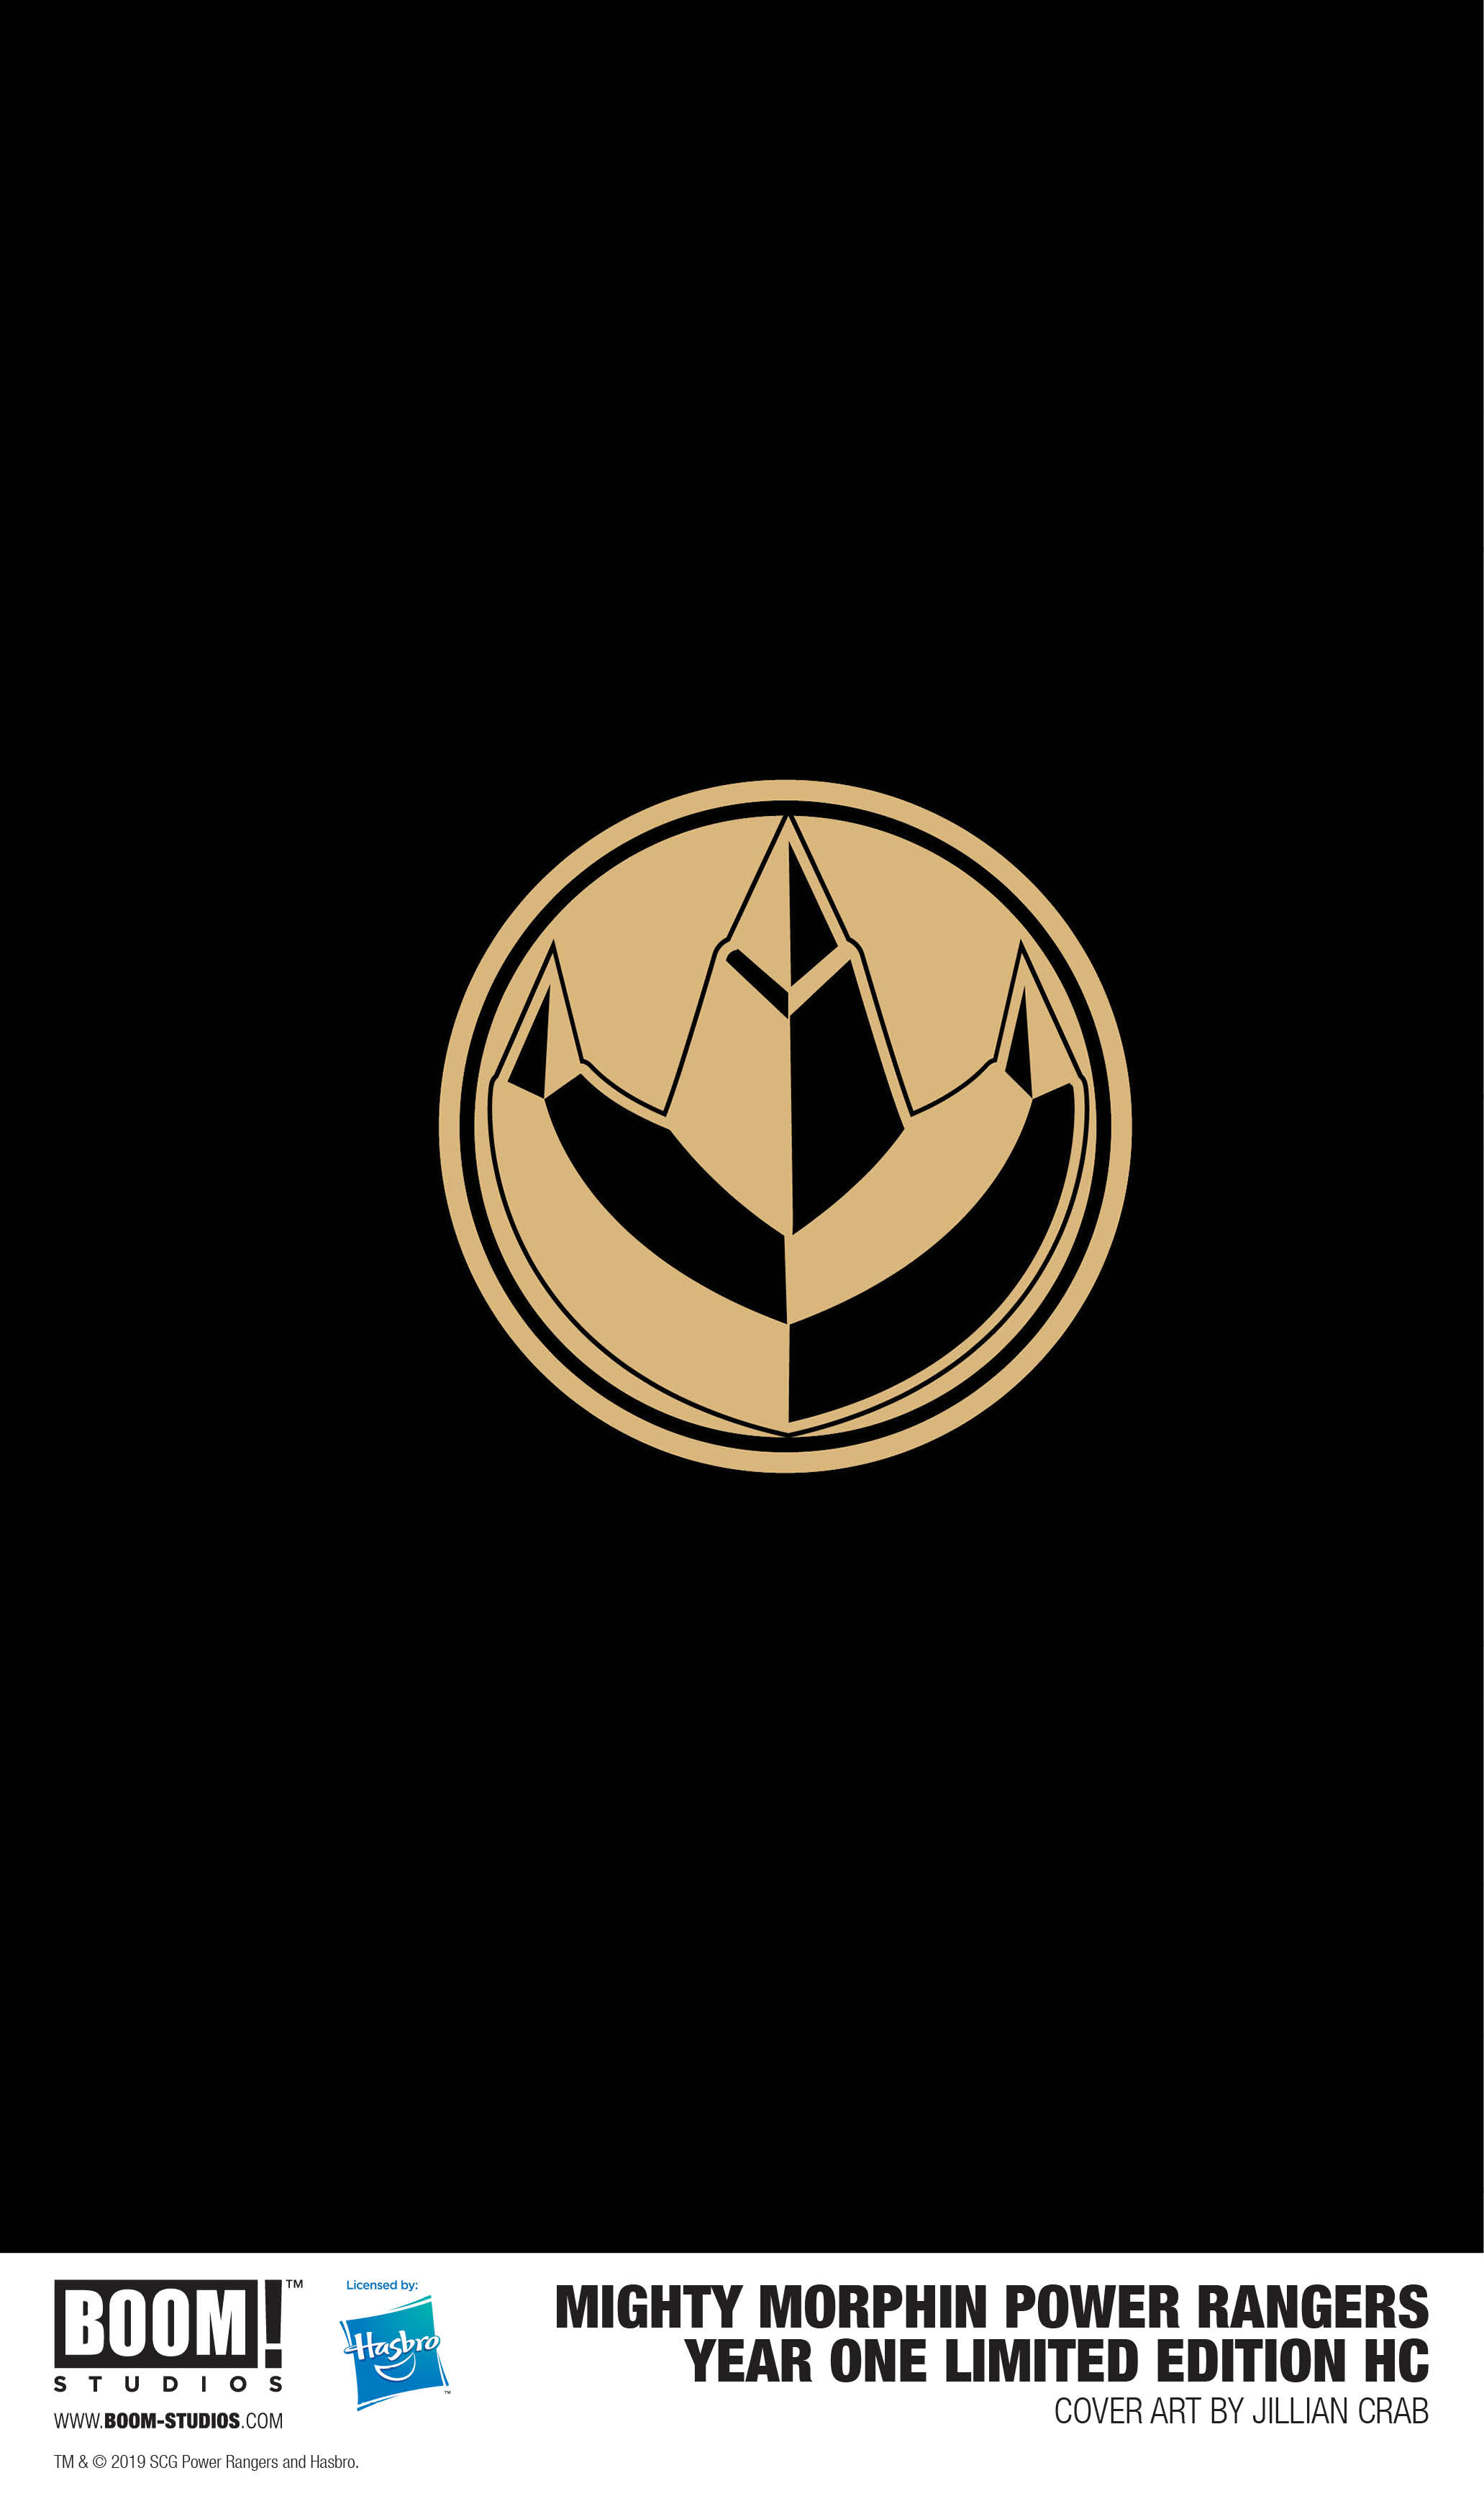 Mighty Morphin Power Rangers Year One Hardcover Limited Edition Variant